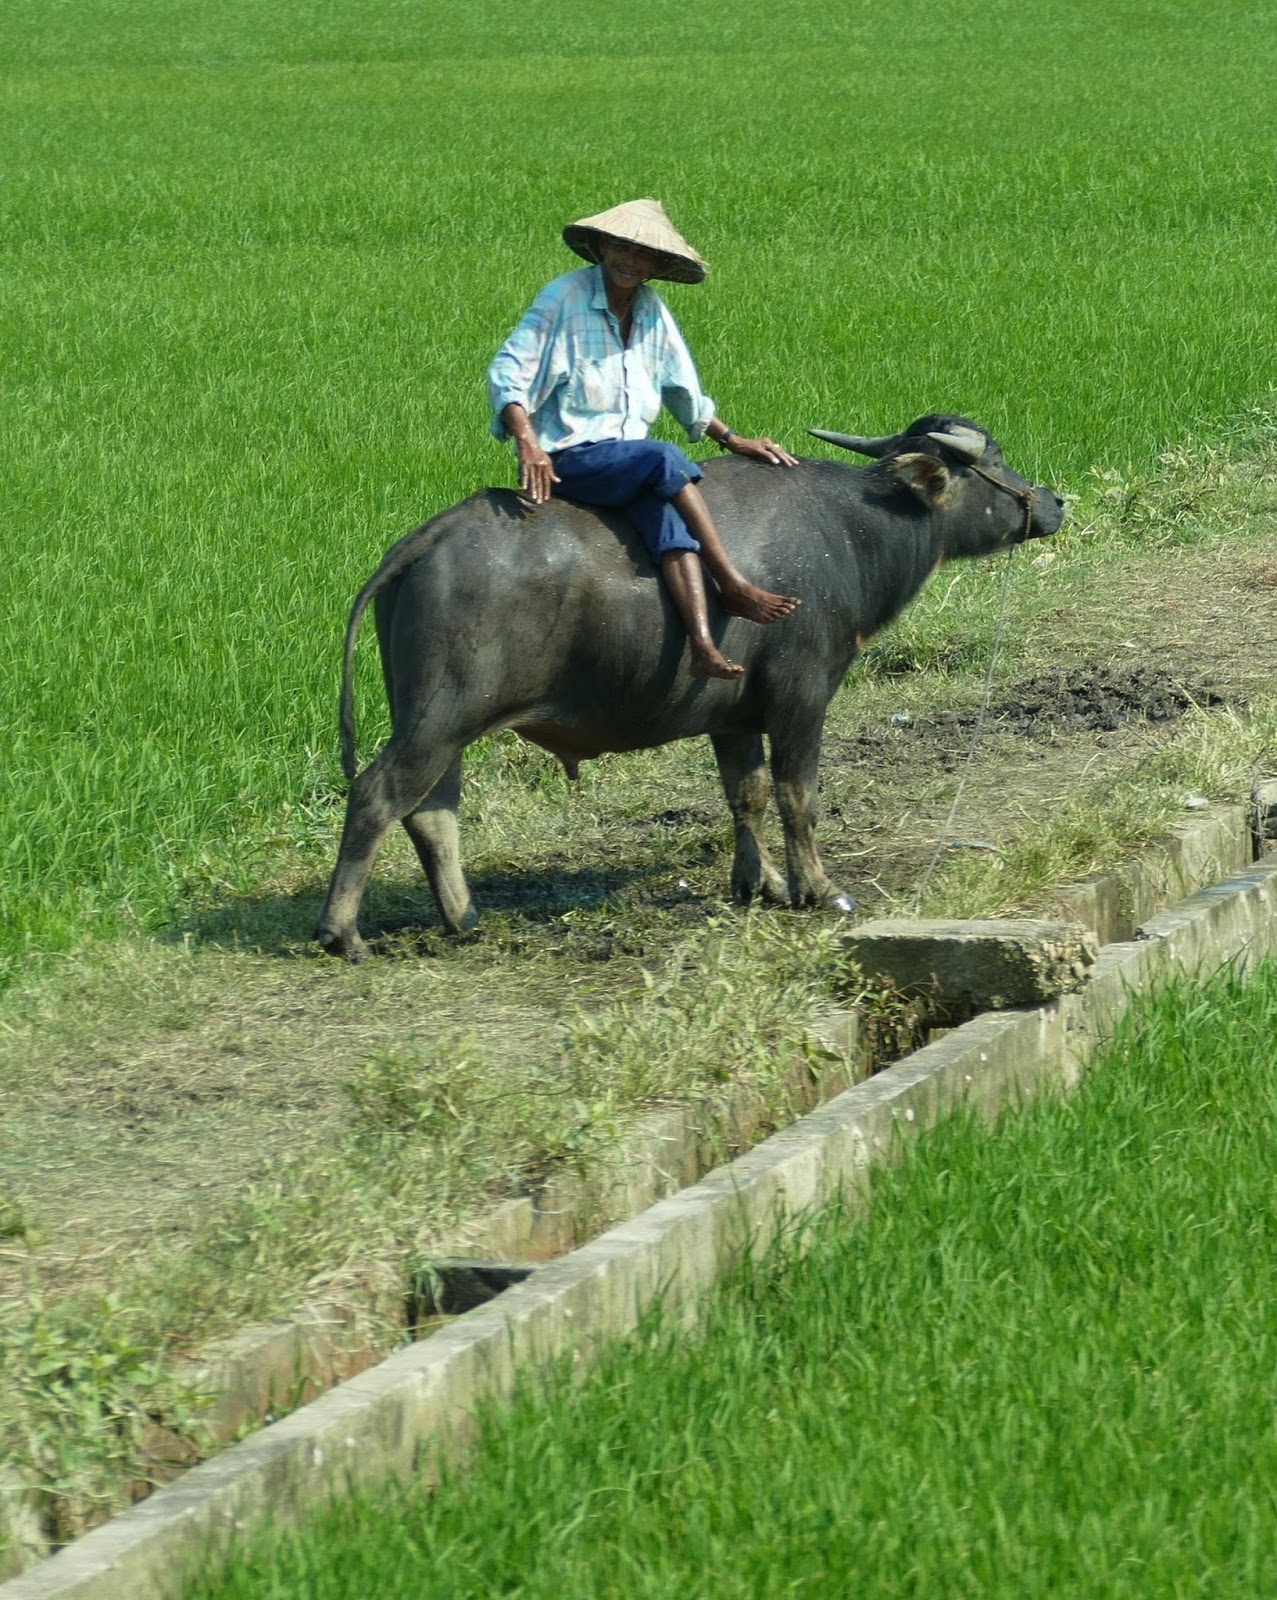 Image of a rice farmer on an Asian water buffalo.